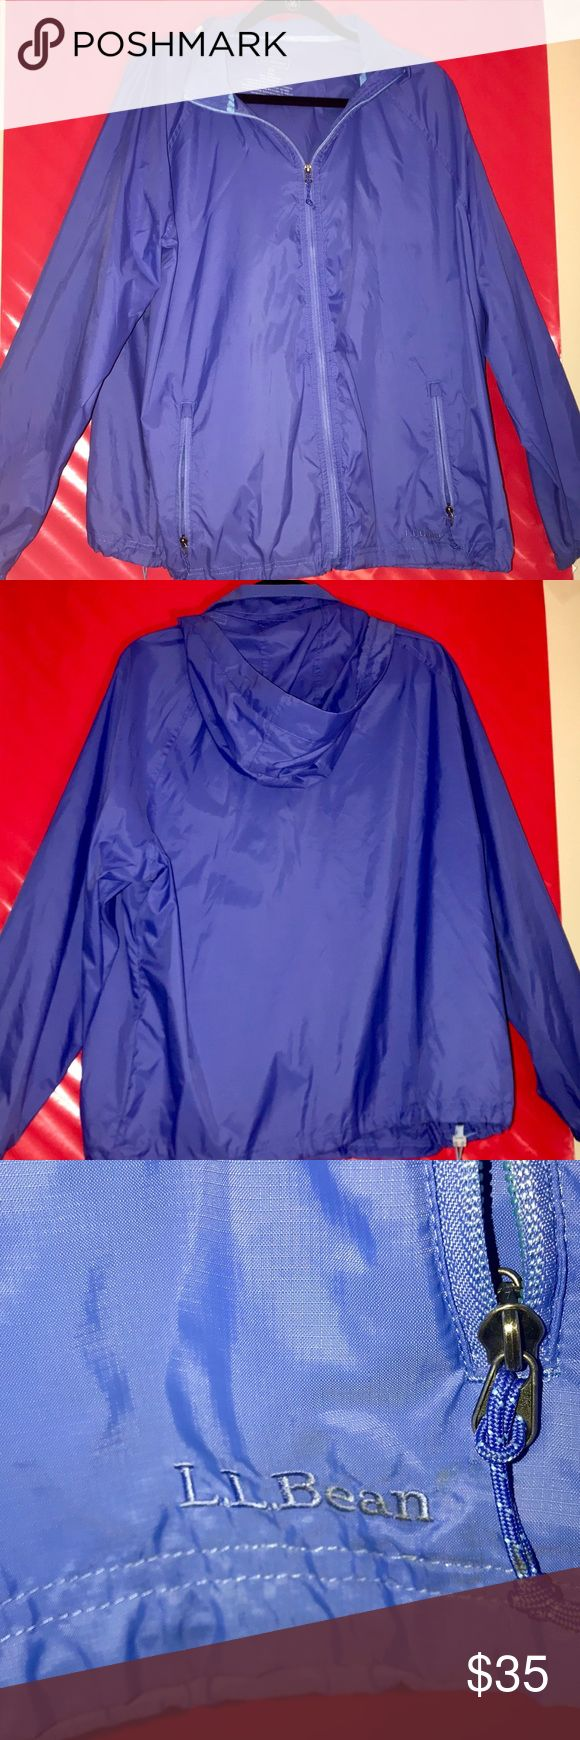 L.L. Bean Raincoat Super cute color, can be for guy or girl, and perfect with black shorts or black leggings. L.L. Bean Jackets & Coats Raincoats